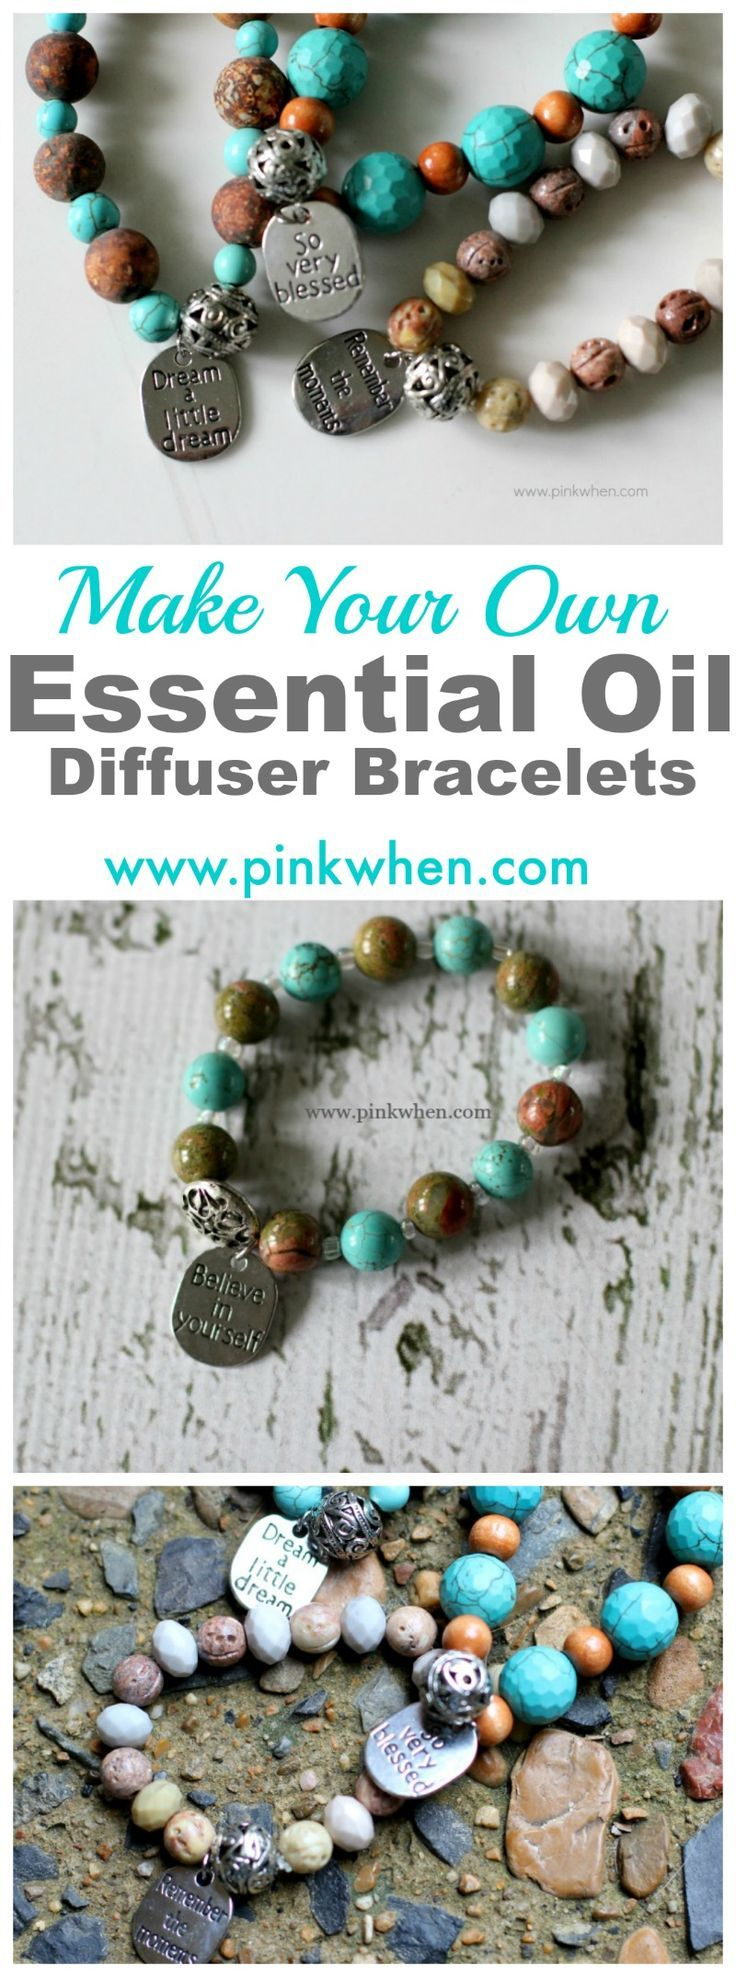 DIY Essential Oil Diffuser Bracelets http://stores.ebay.co.uk/aromatherapyandnaturalproducts